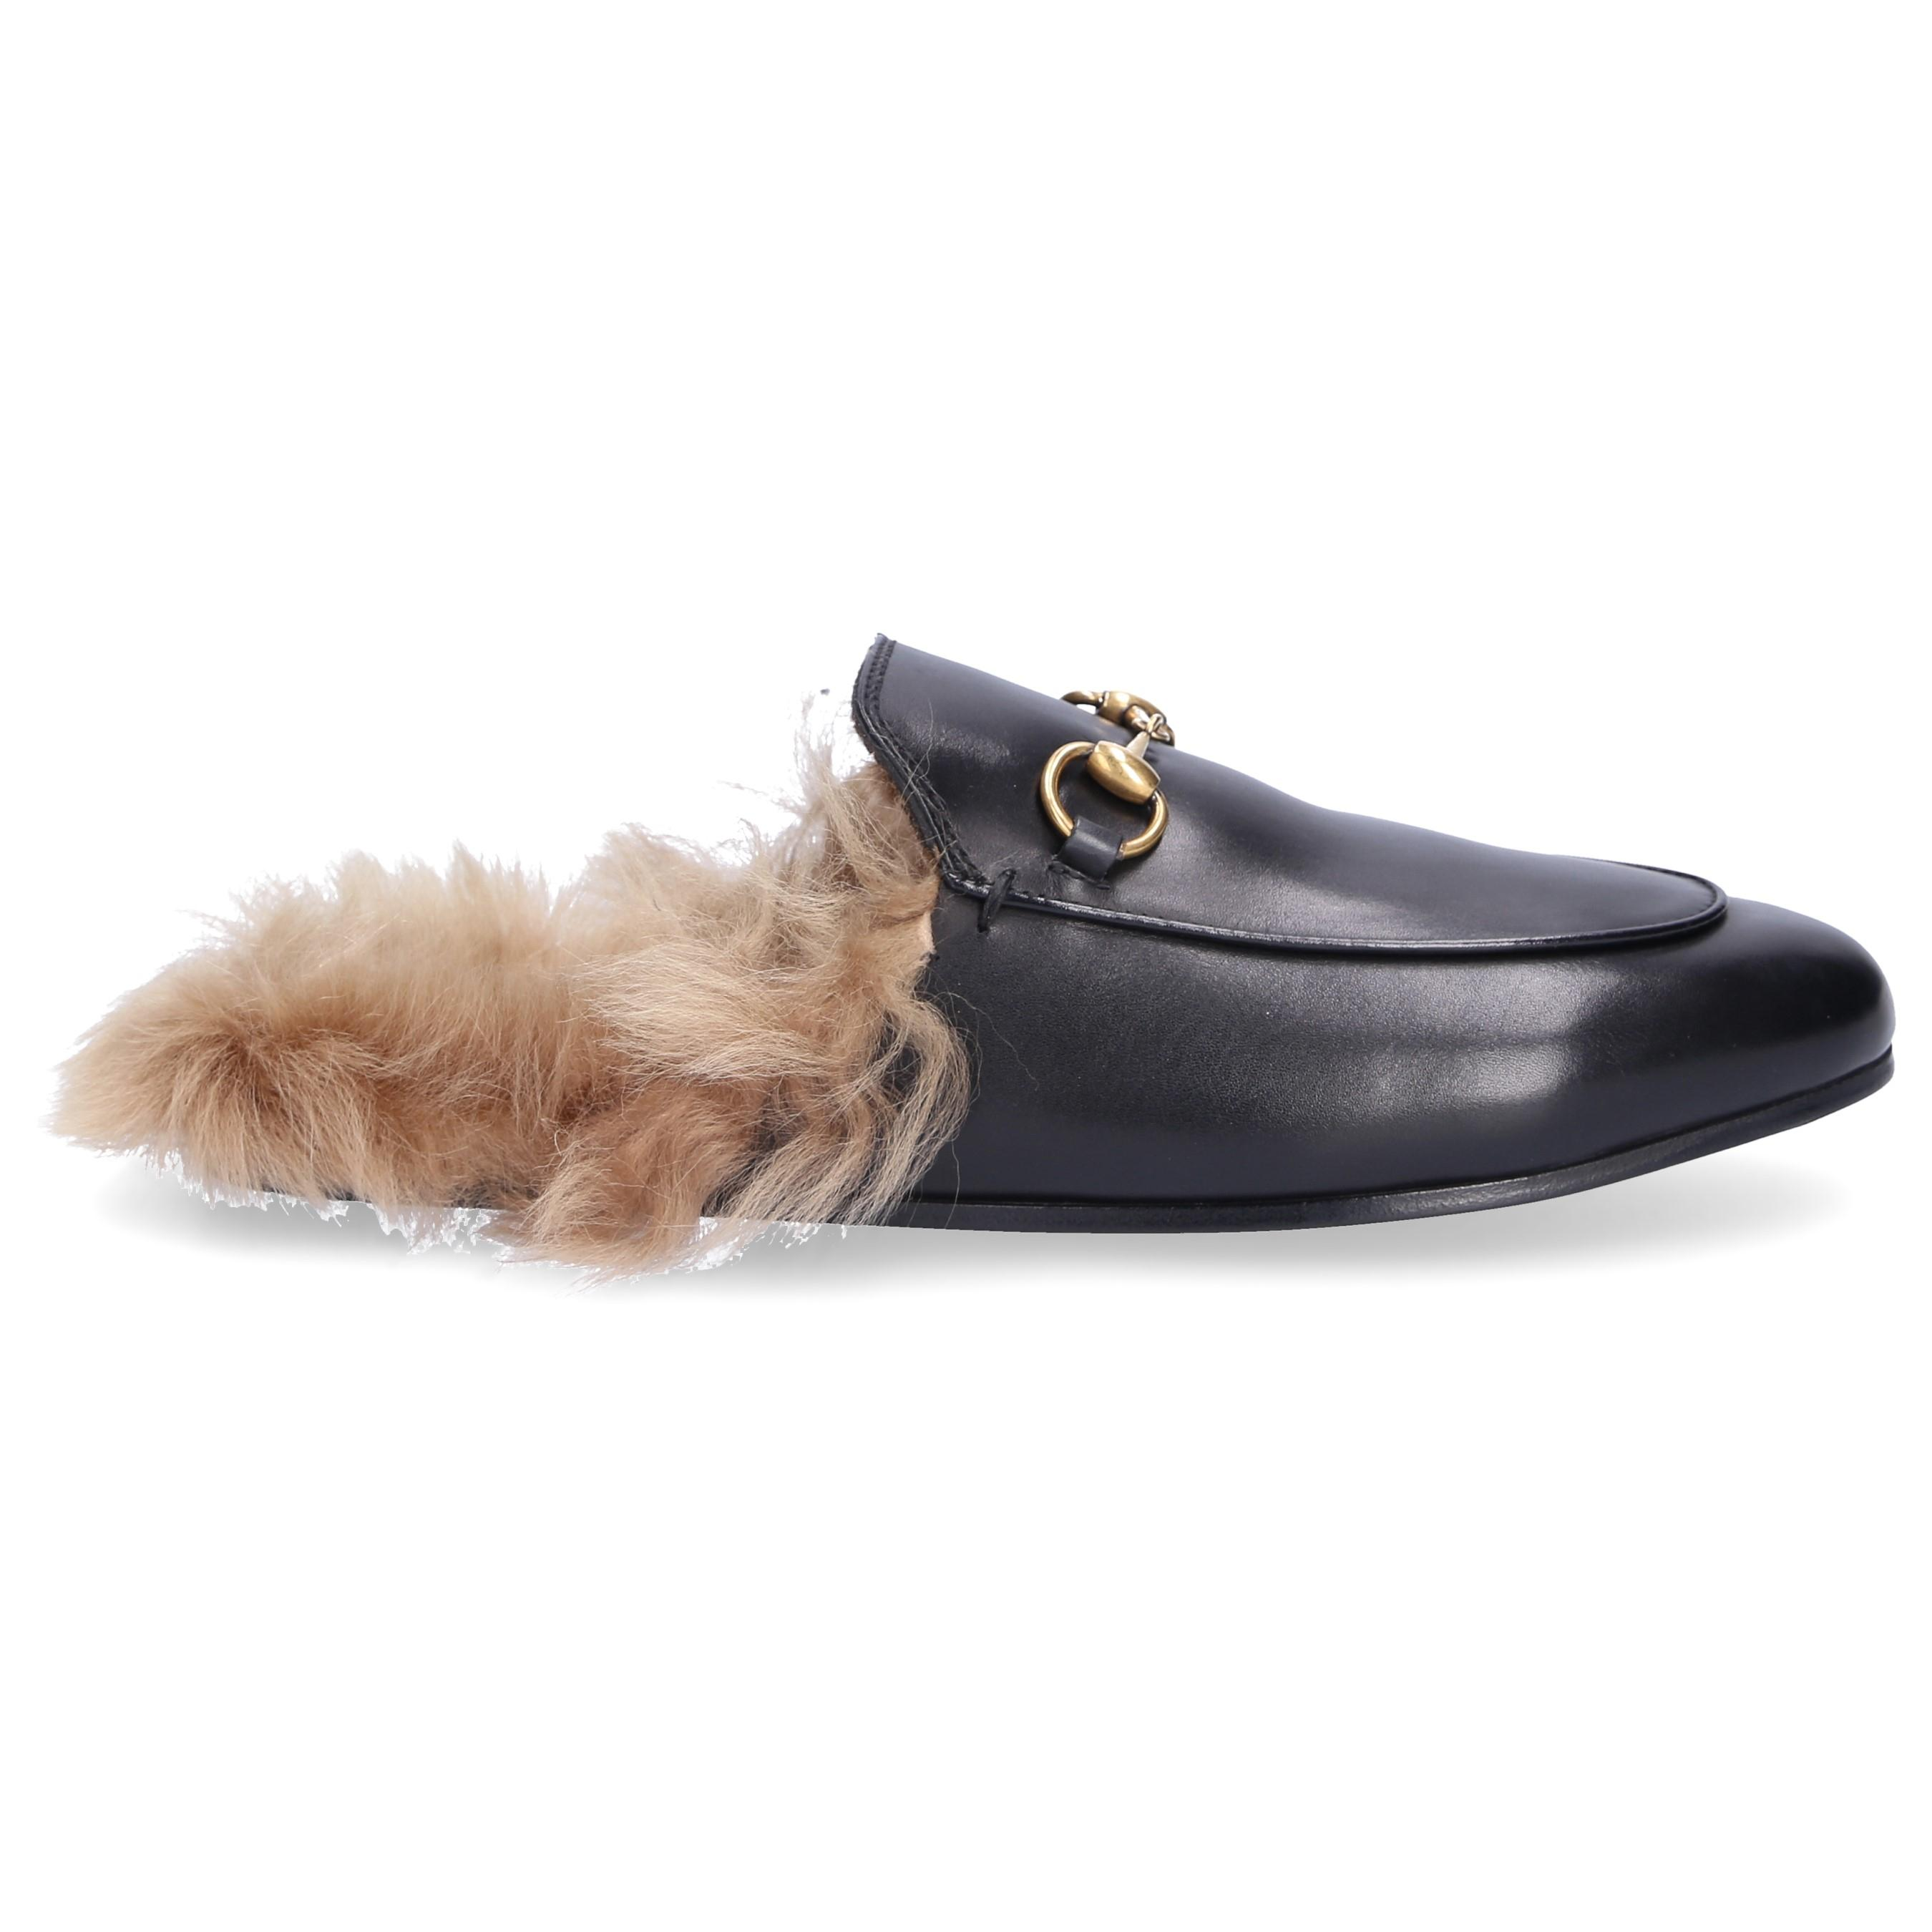 367e8189f Gucci Slip On Shoes Dkhh0 Lamb Fur Smooth Leather Horsebit-detail ...